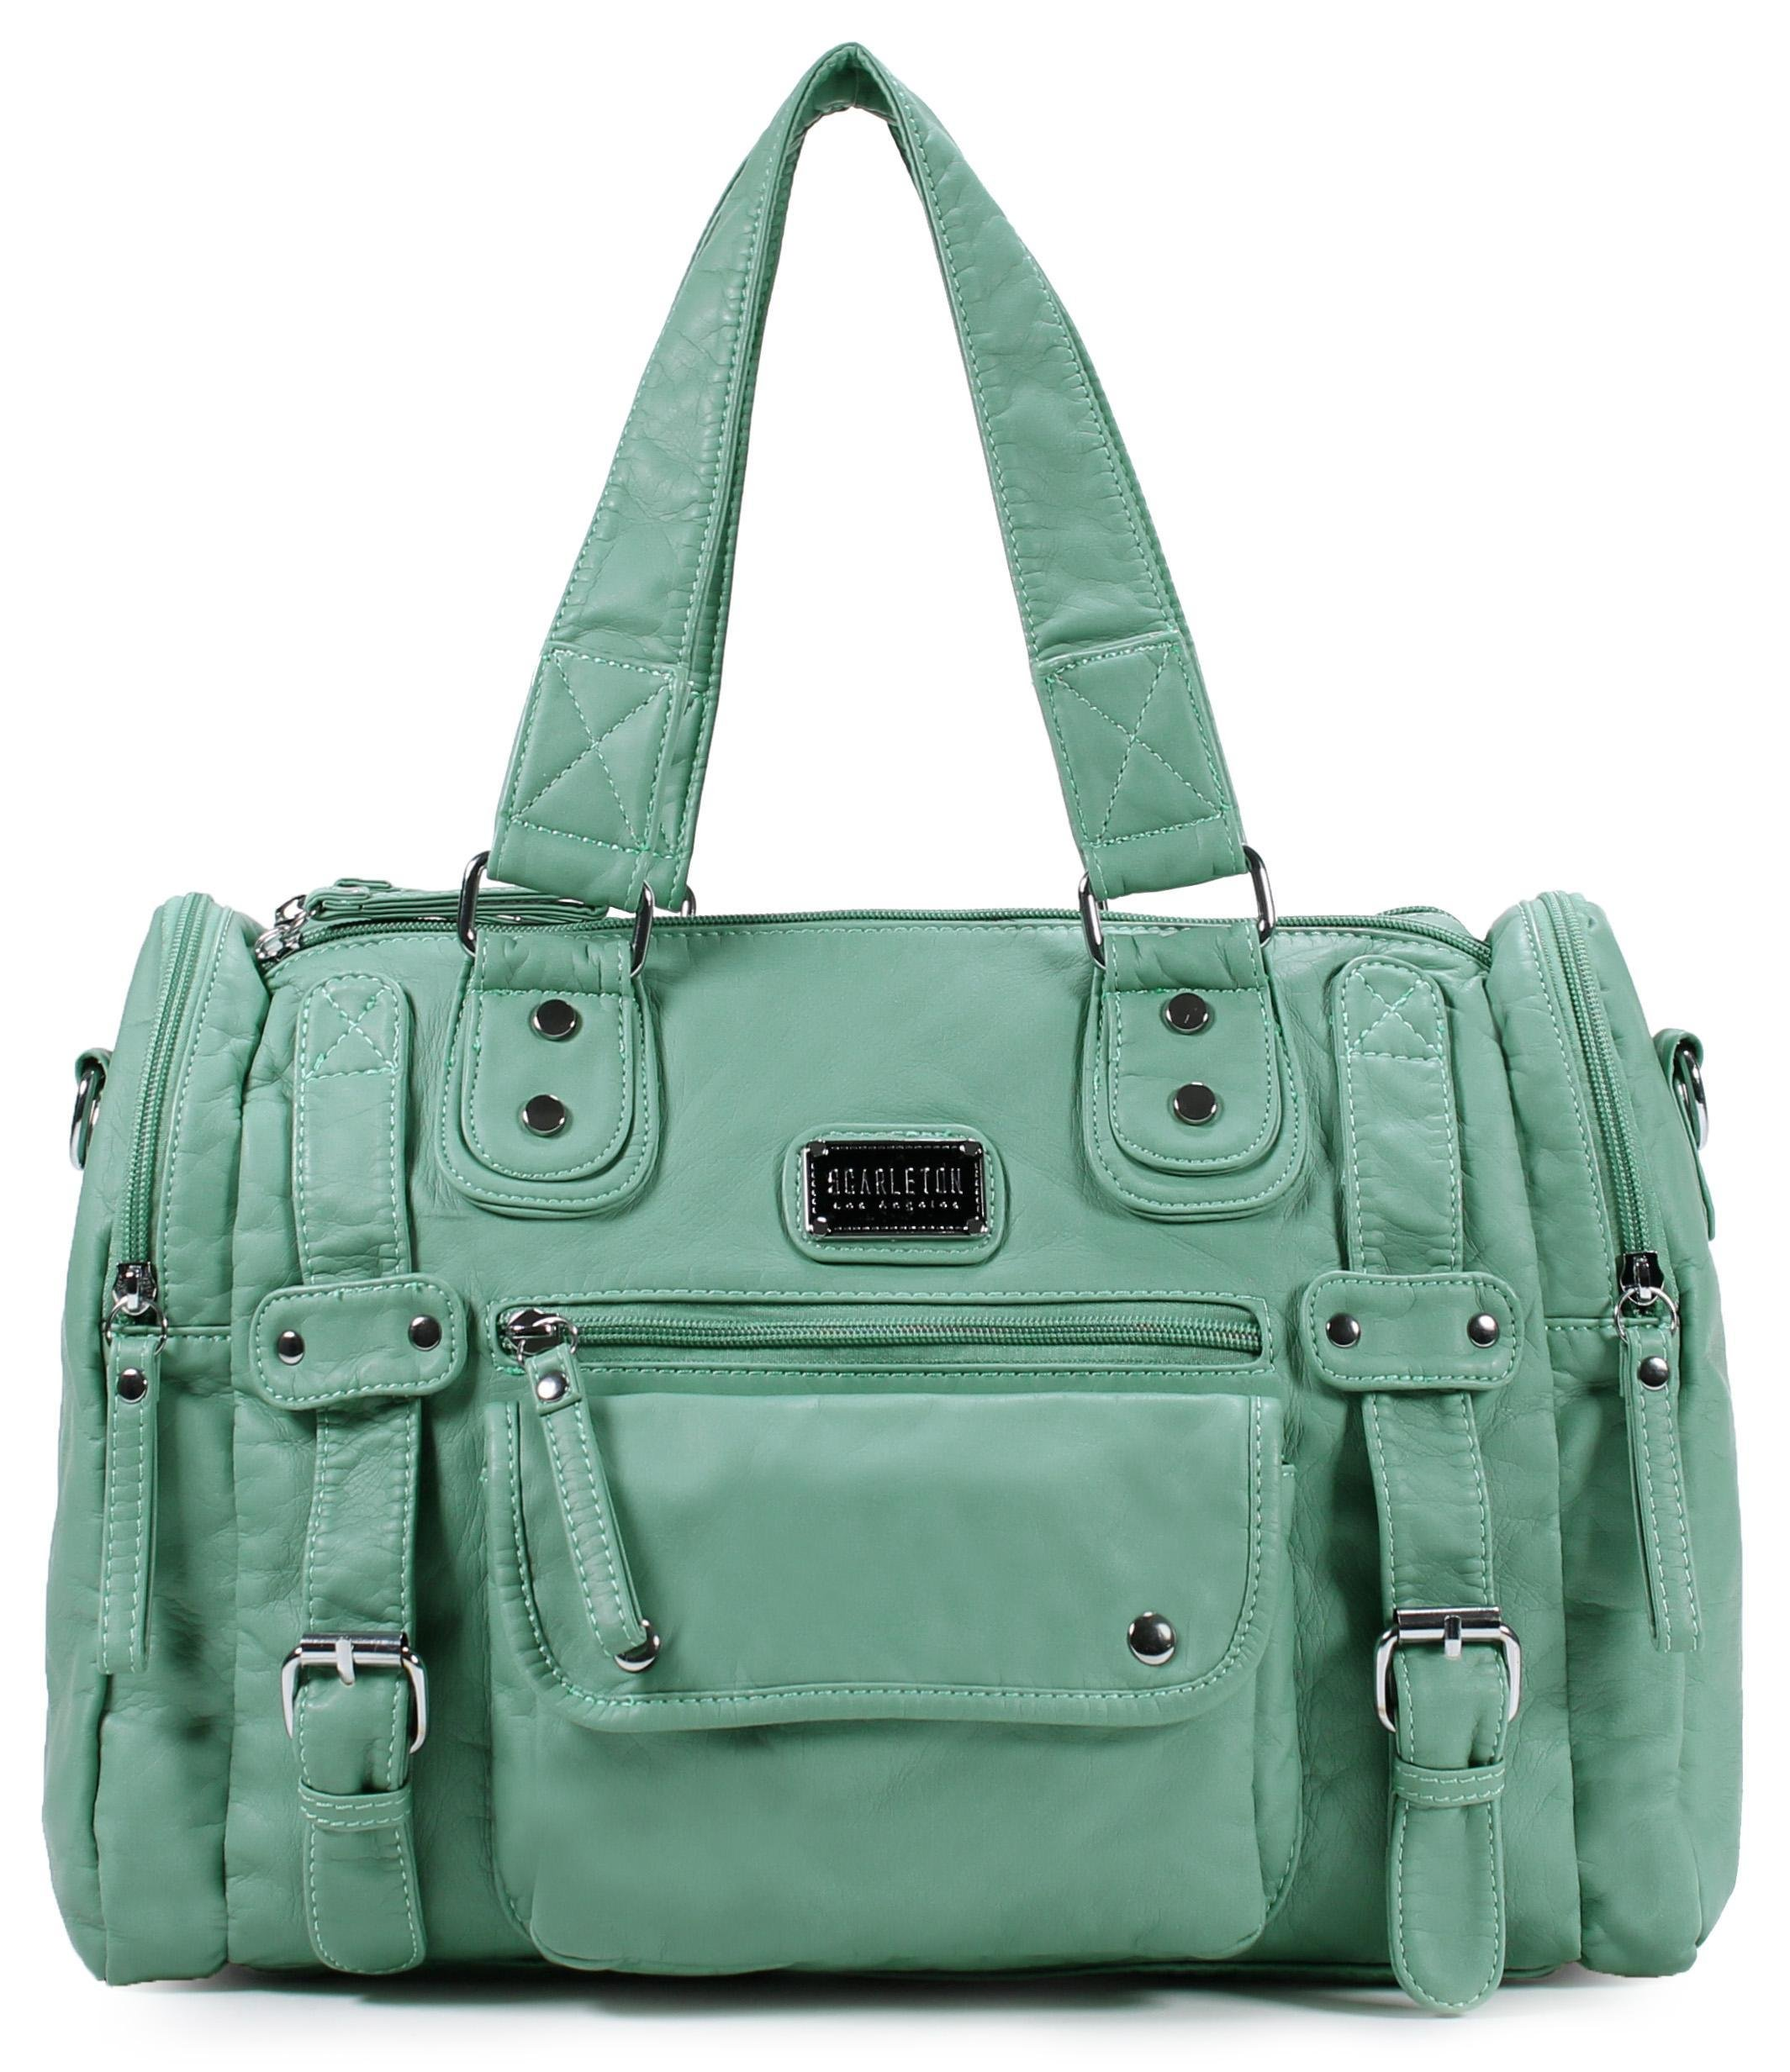 Scarleton Soft Barrel Shoulder Bag H148553 - Mint